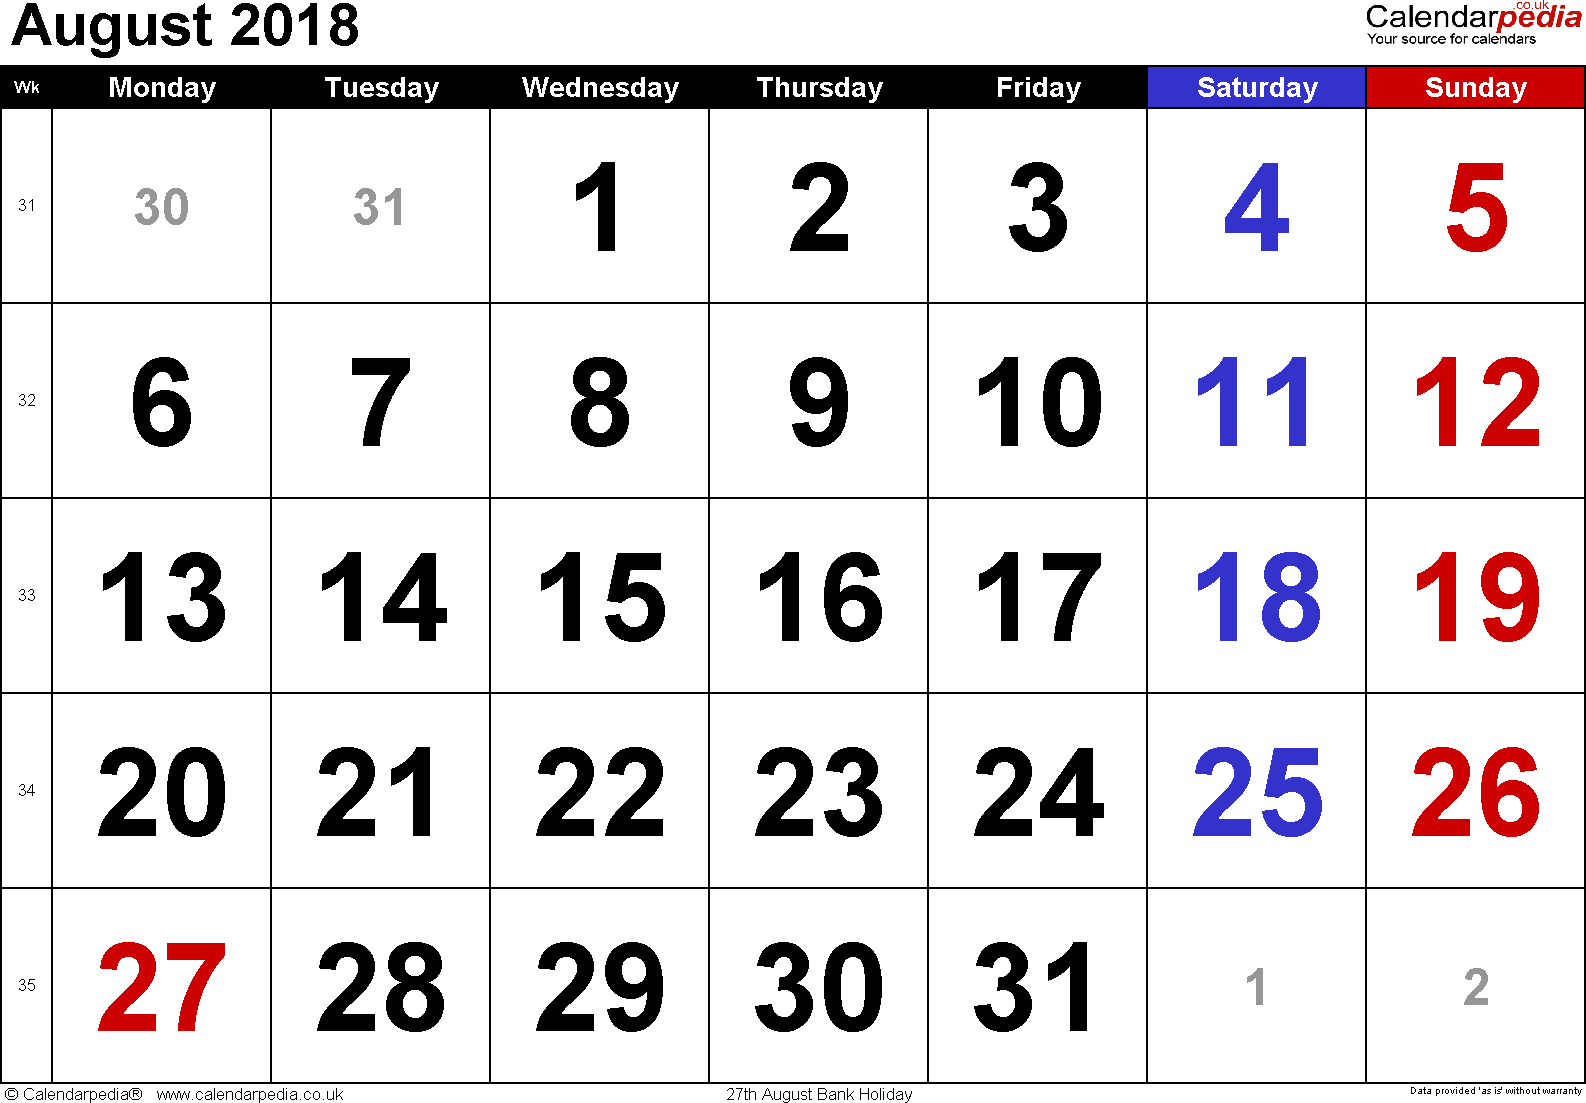 Calendar August 2018, landscape orientation, large numerals, 1 page, with UK bank holidays and week numbers